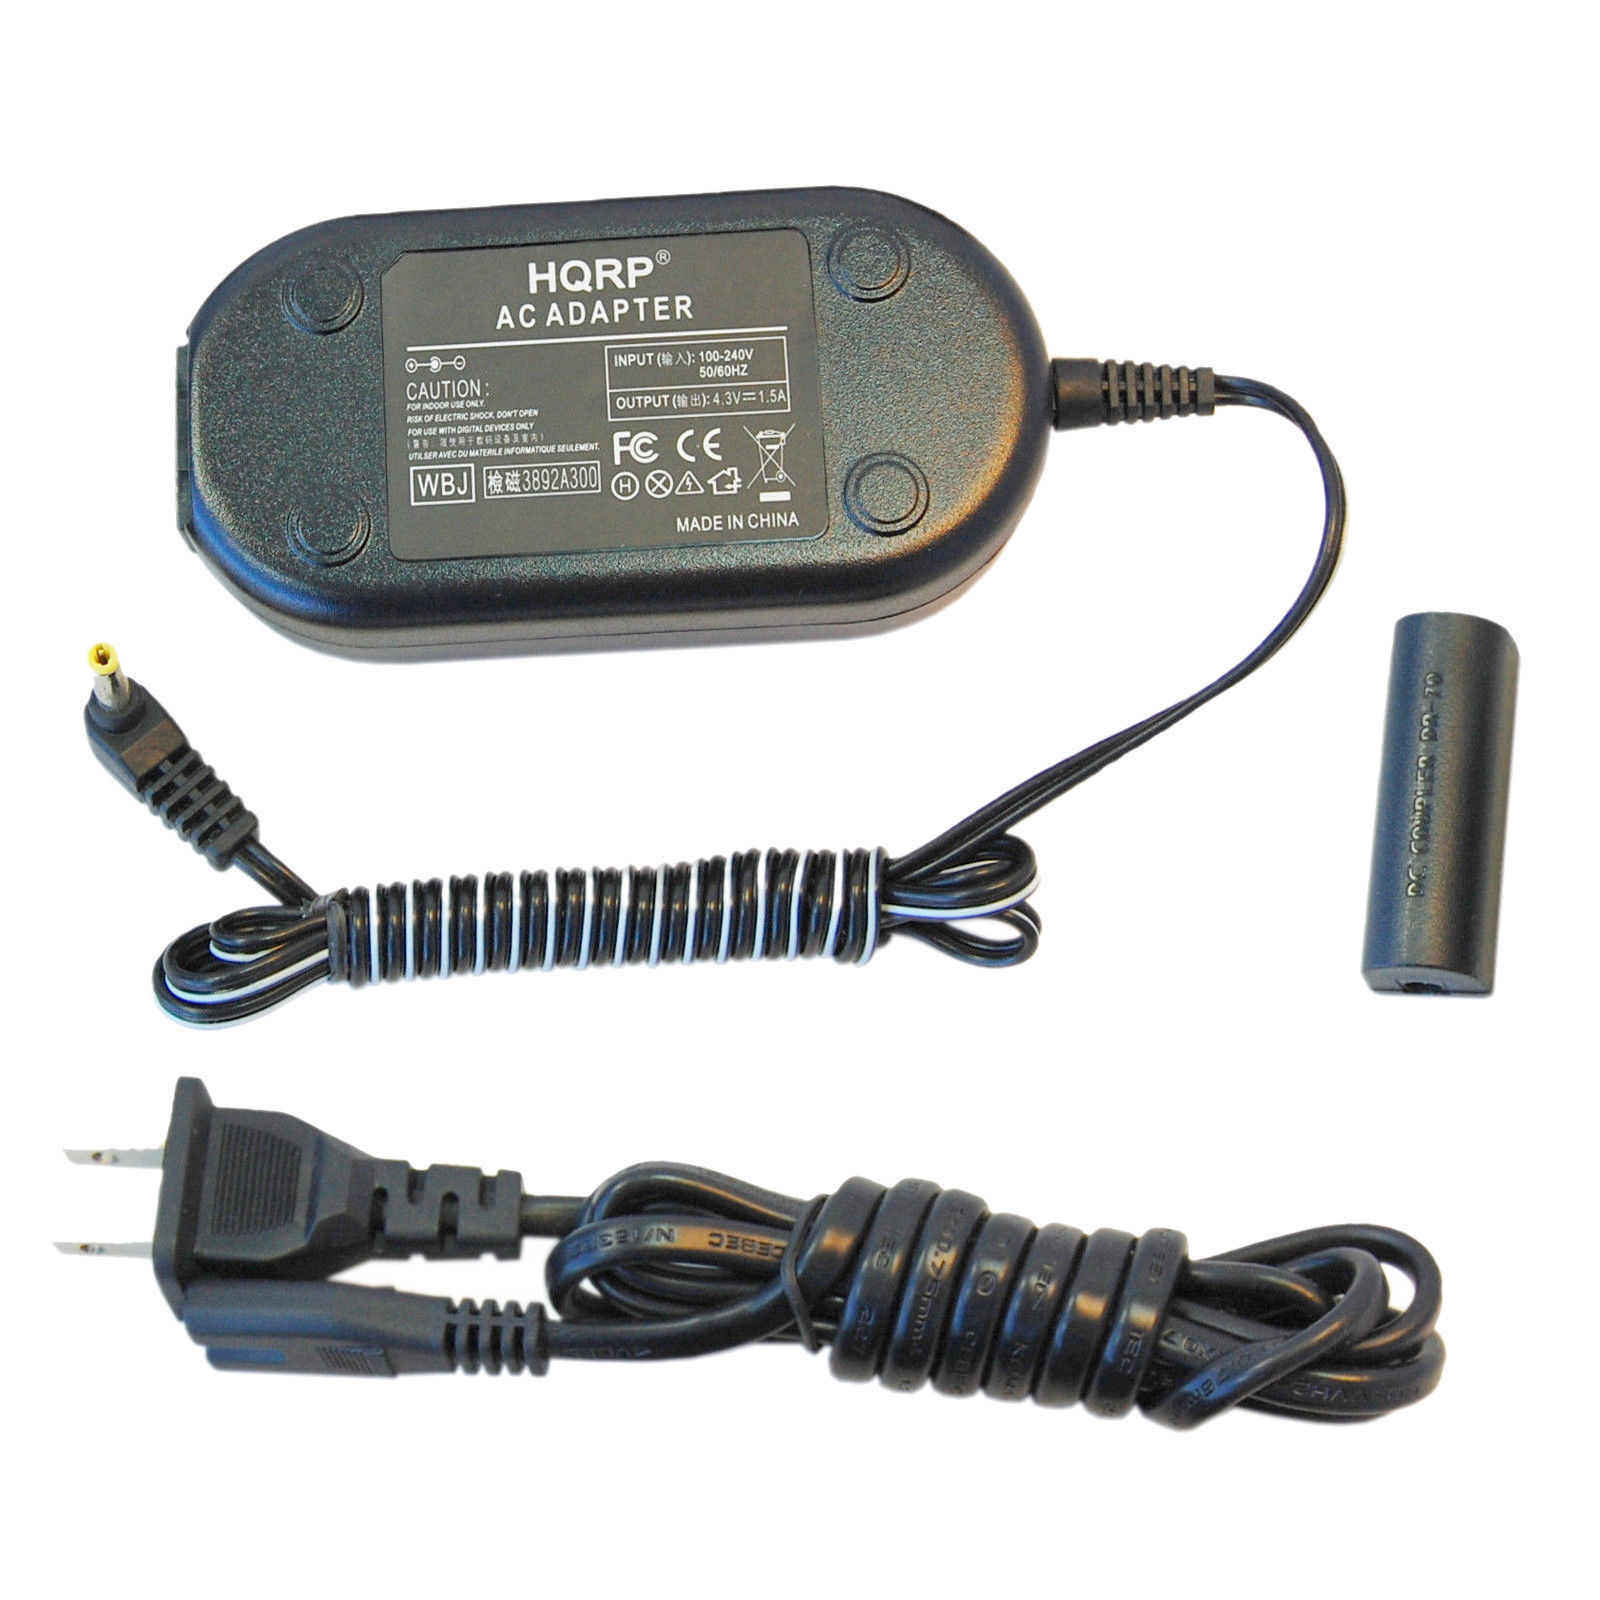 HQRP AC Adapter + DC Coupler for Canon PowerShot IXUS 500 510 1000 1100 HS NB-9L - $22.74